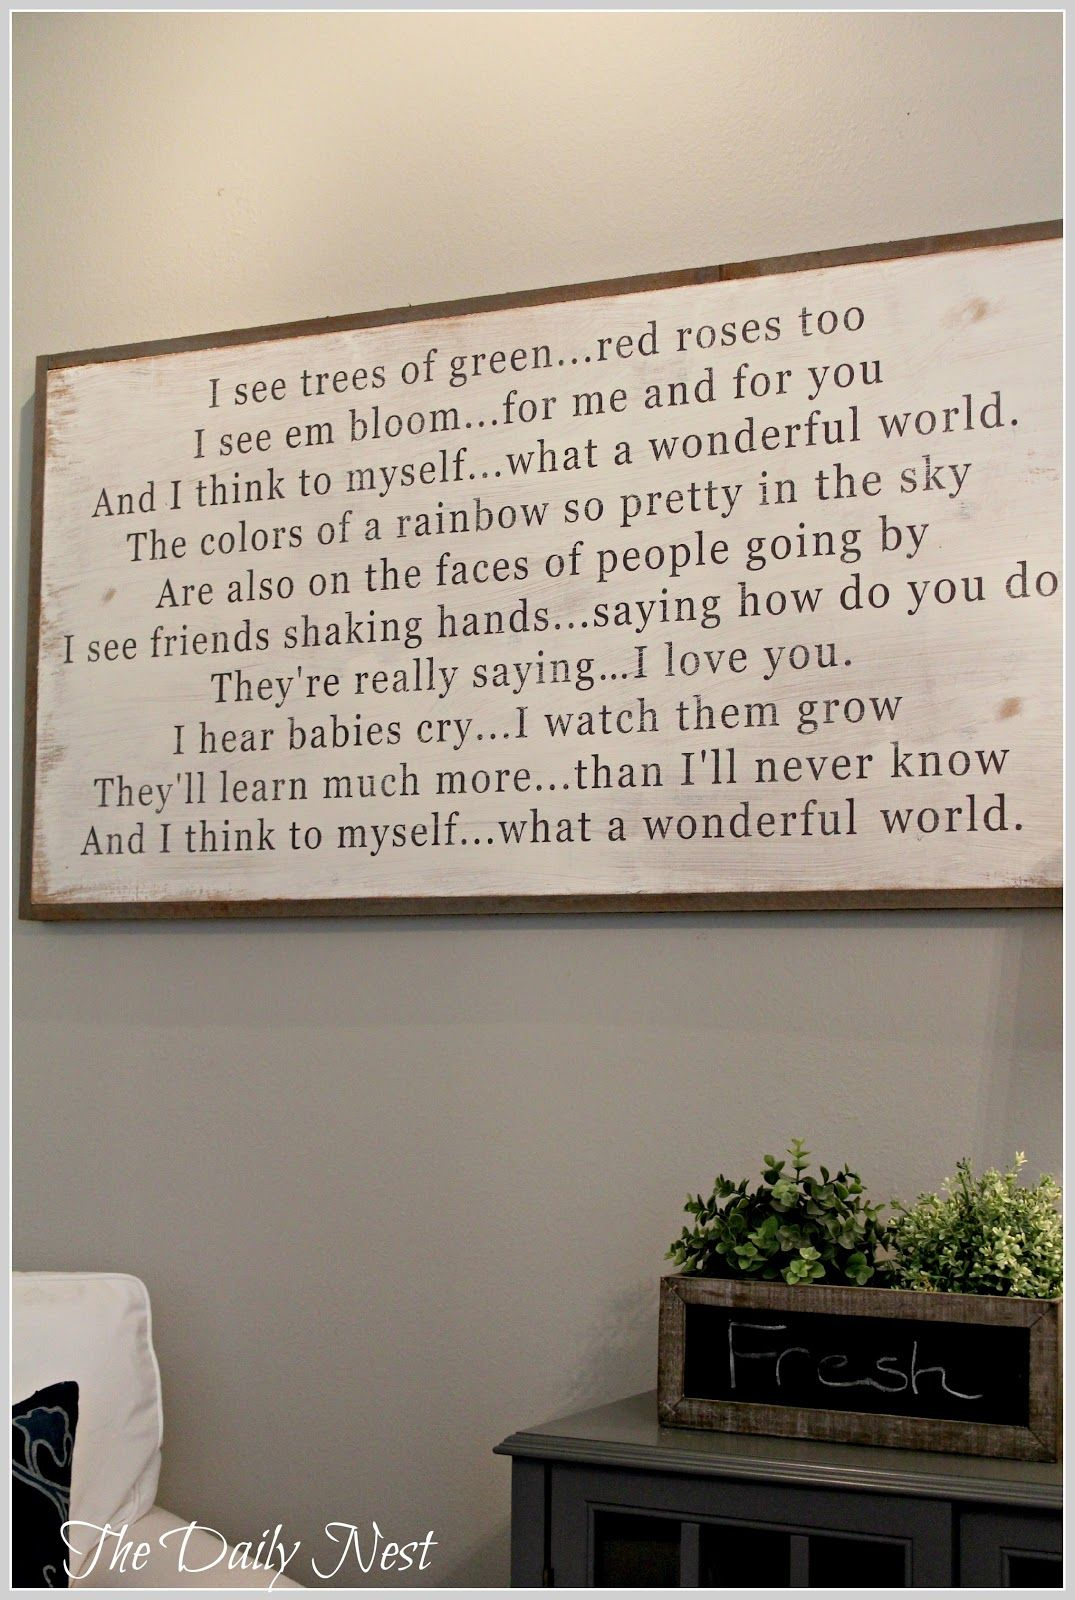 The Daily Nest: What A Wonderful World-Between You And Me for Wonderful World Wall Decor (Image 14 of 30)